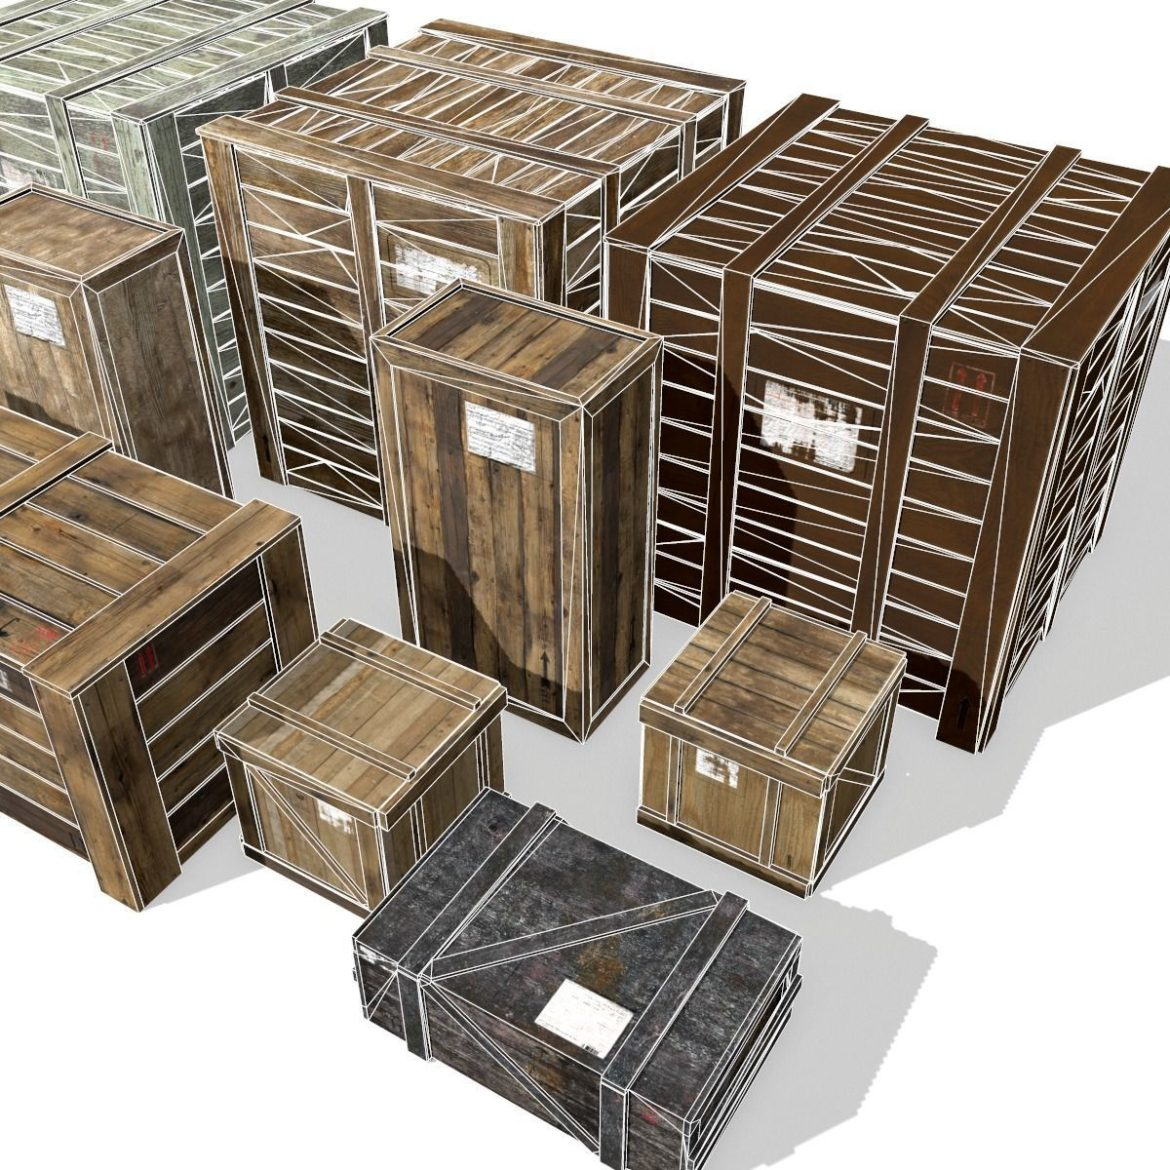 transport crates pack 3 3d model fbx obj 319444